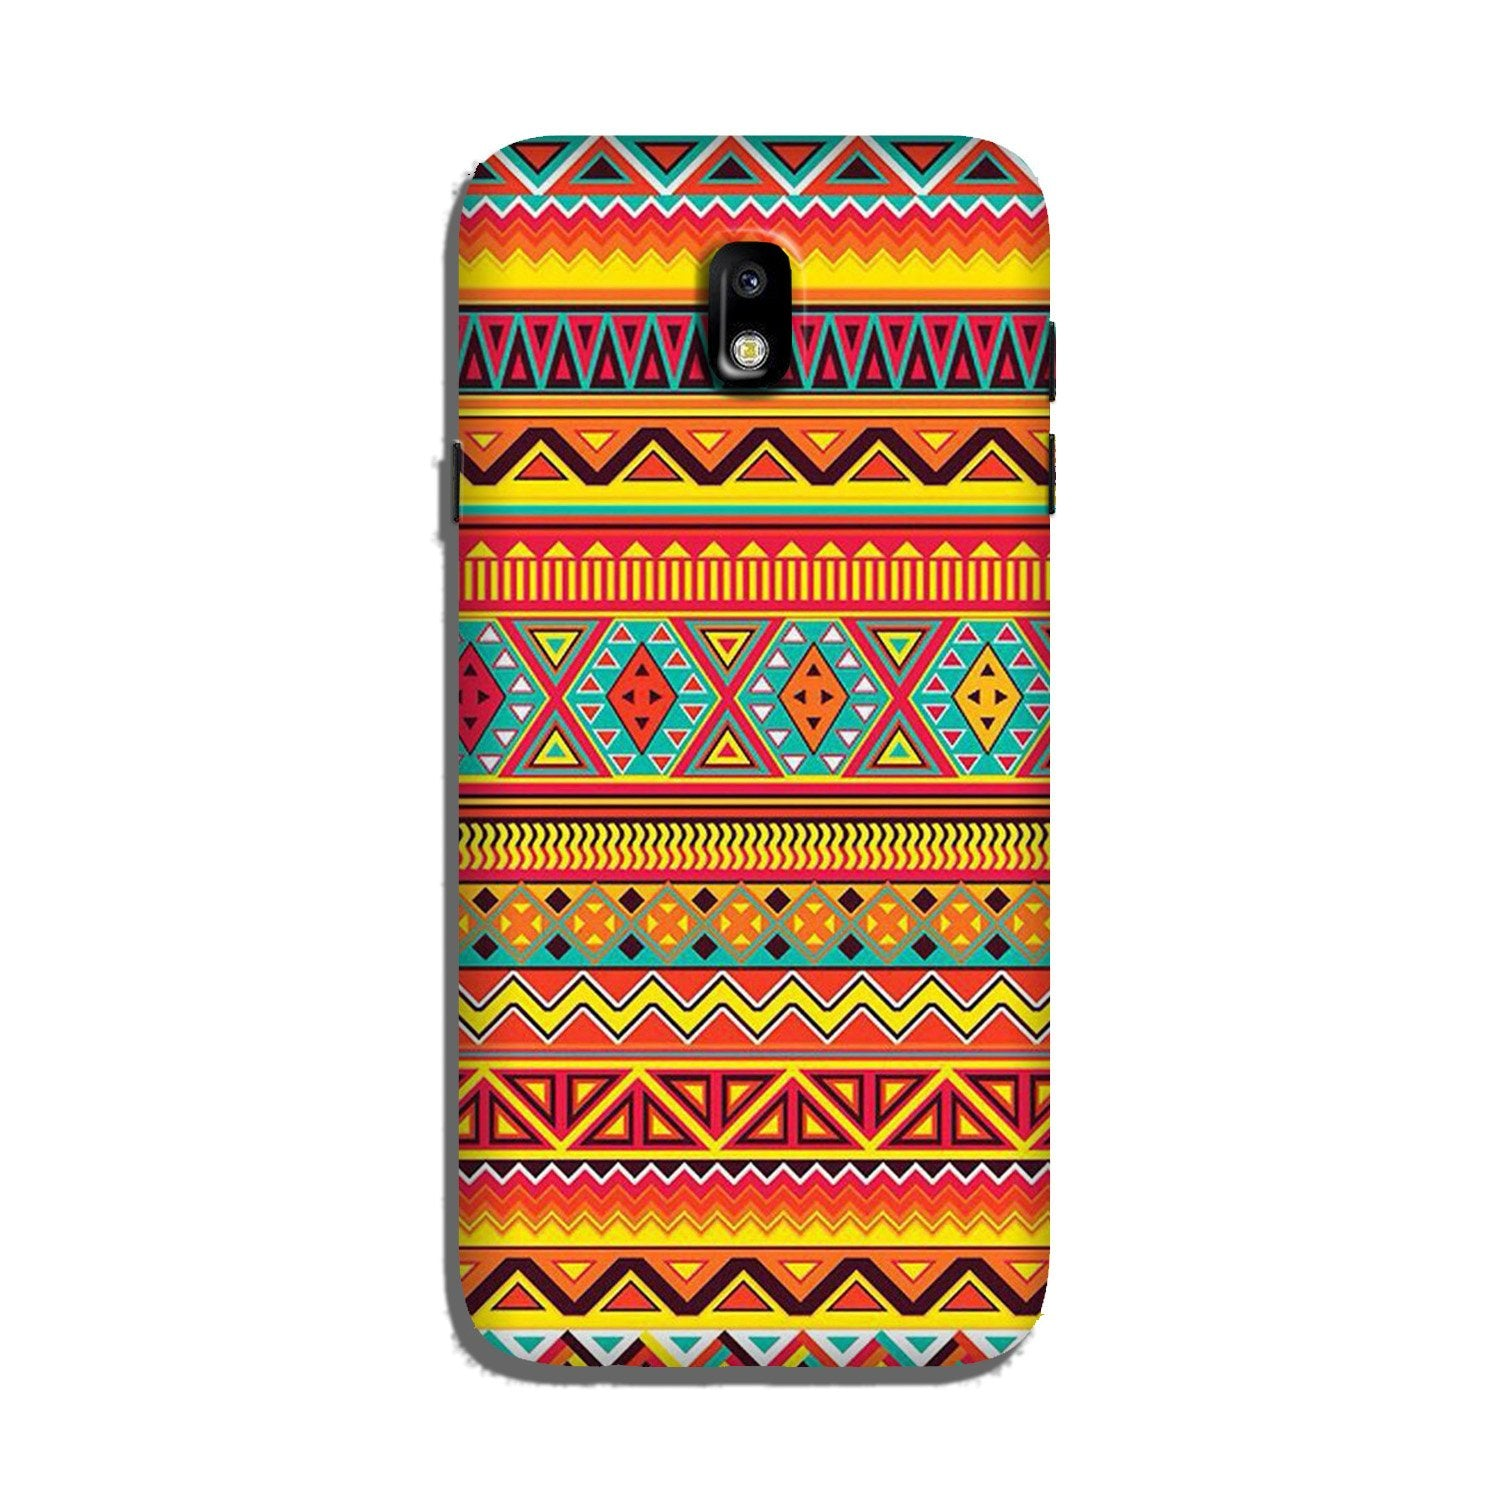 Zigzag line pattern Case for Galaxy J5 Pro